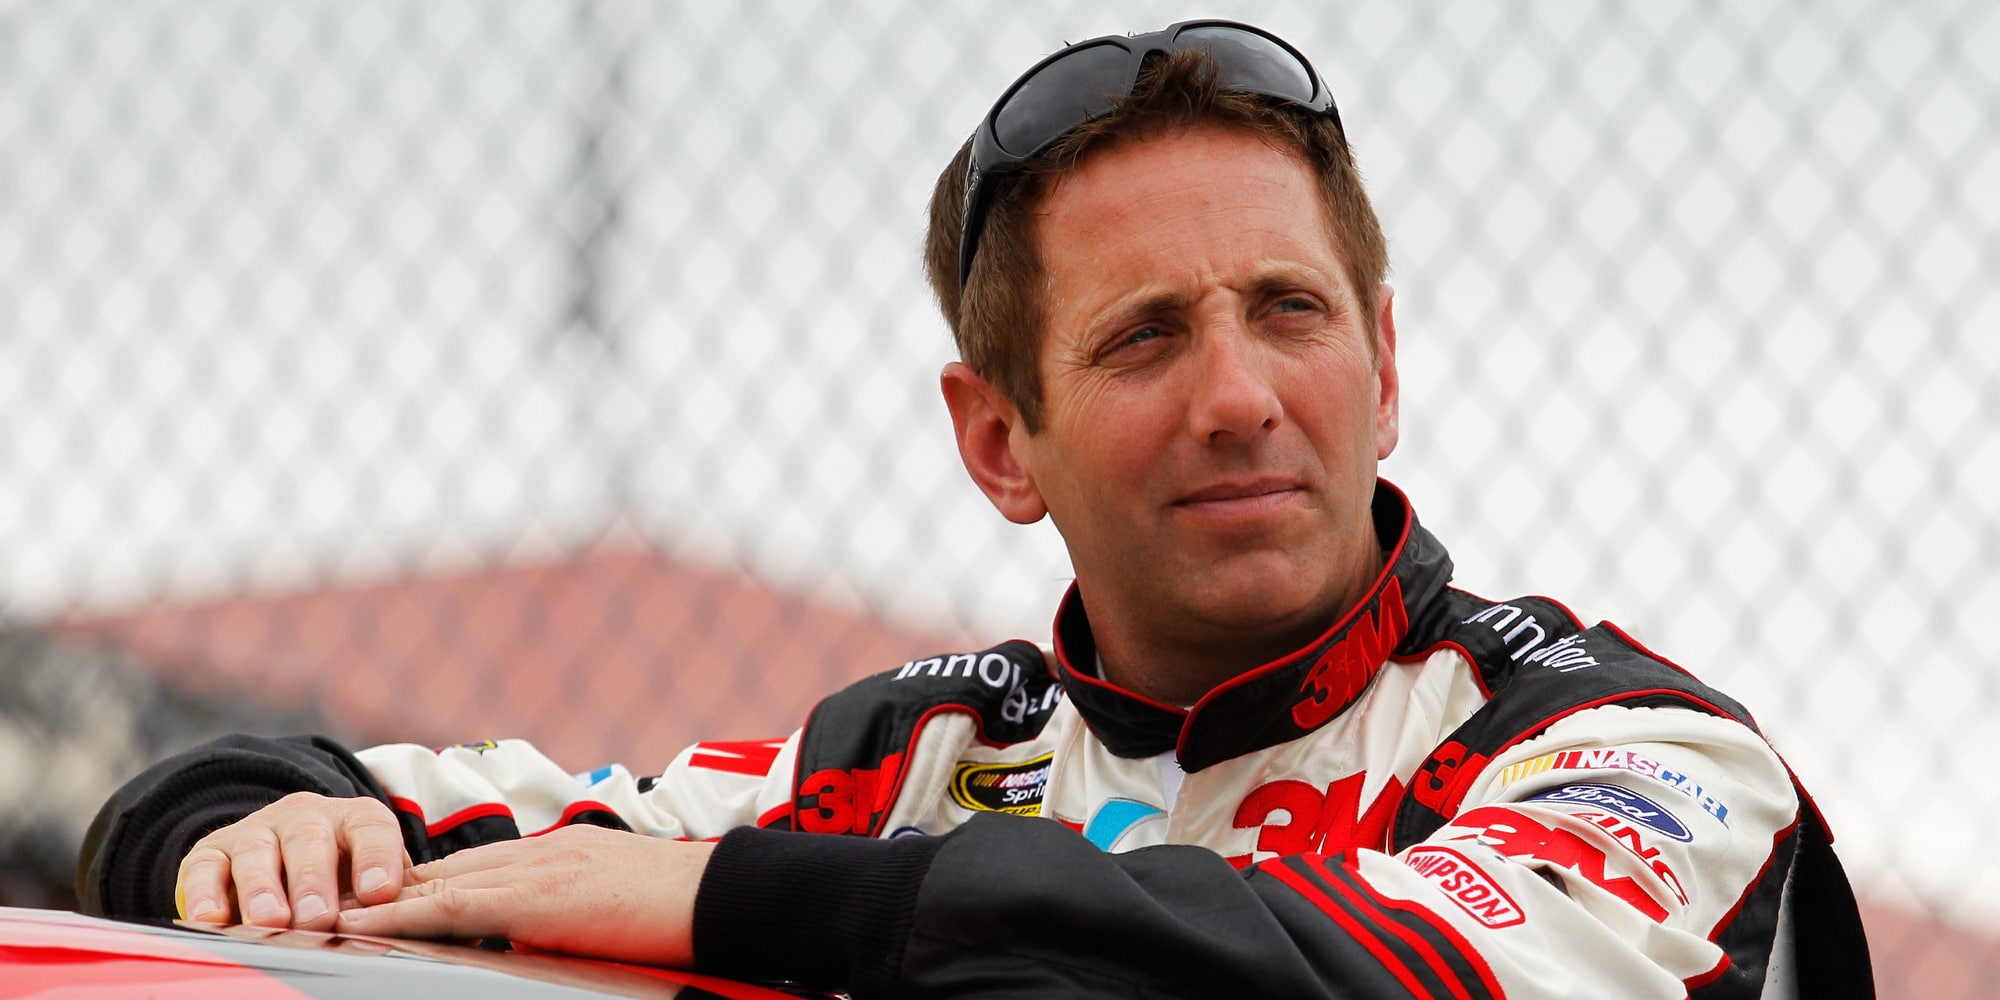 Greg Biffle Net Worth 2018: Wiki, Married, Family, Wedding